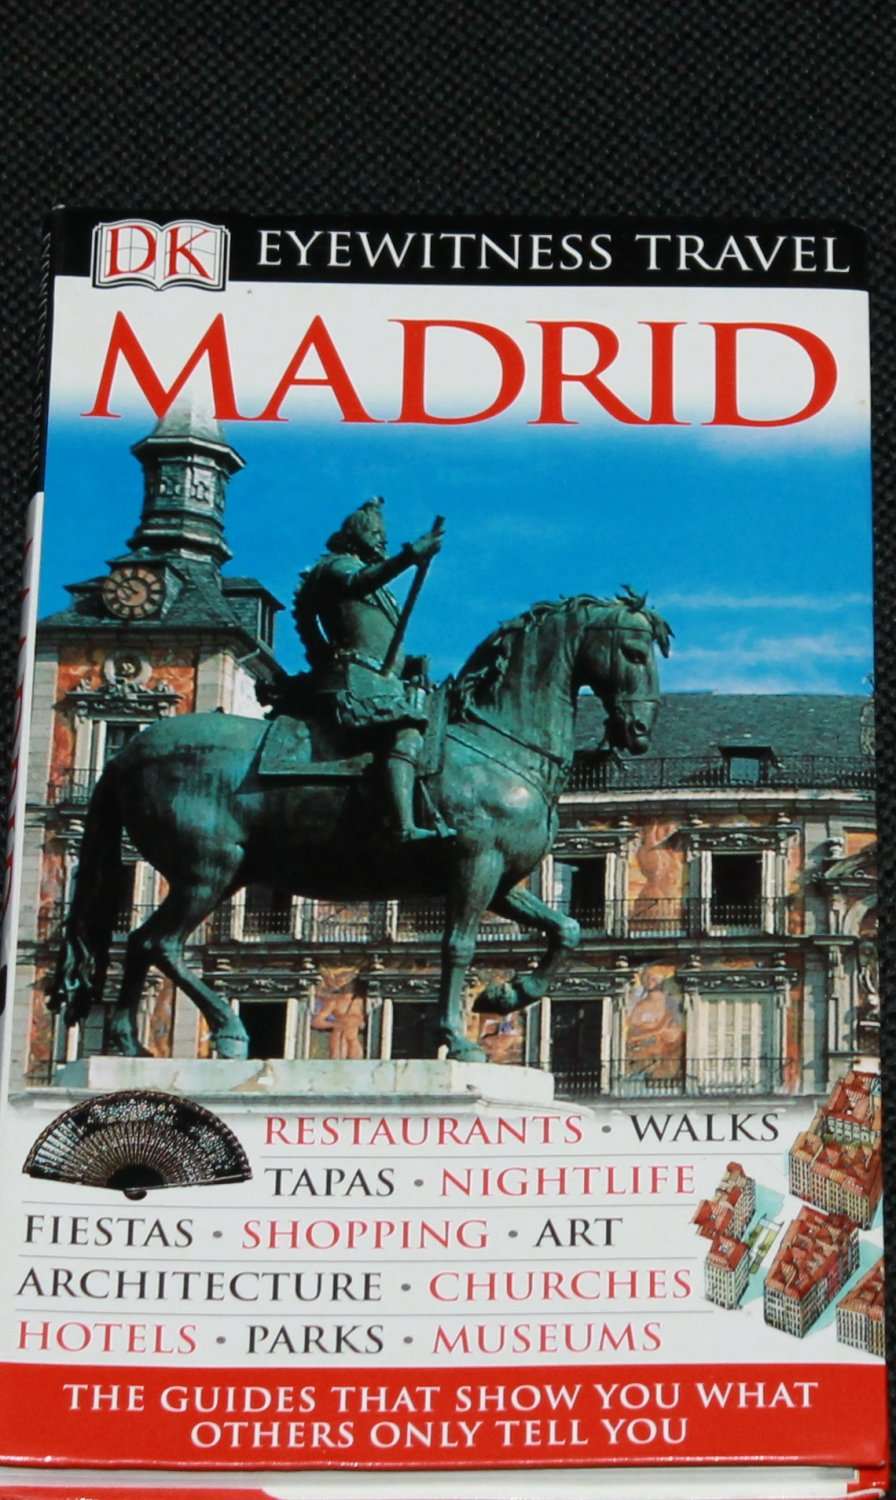 Madrid tour book - travel book capital of Spain - visitors traveling travel guide book